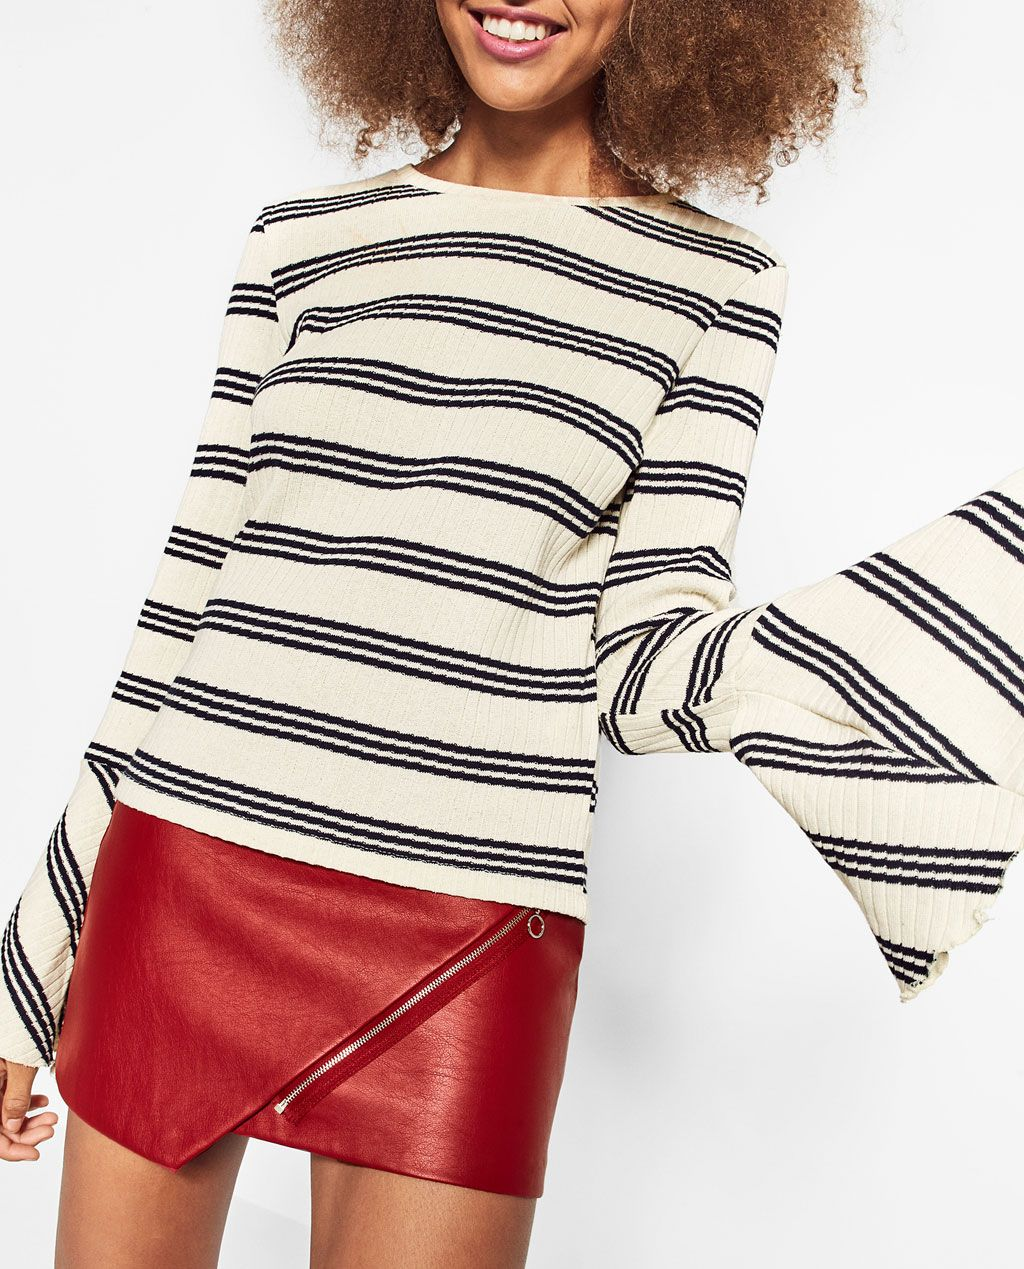 STRIPE TOP WITH RUFFLE SLEEVES from Zara | Winter Wardrobe ...